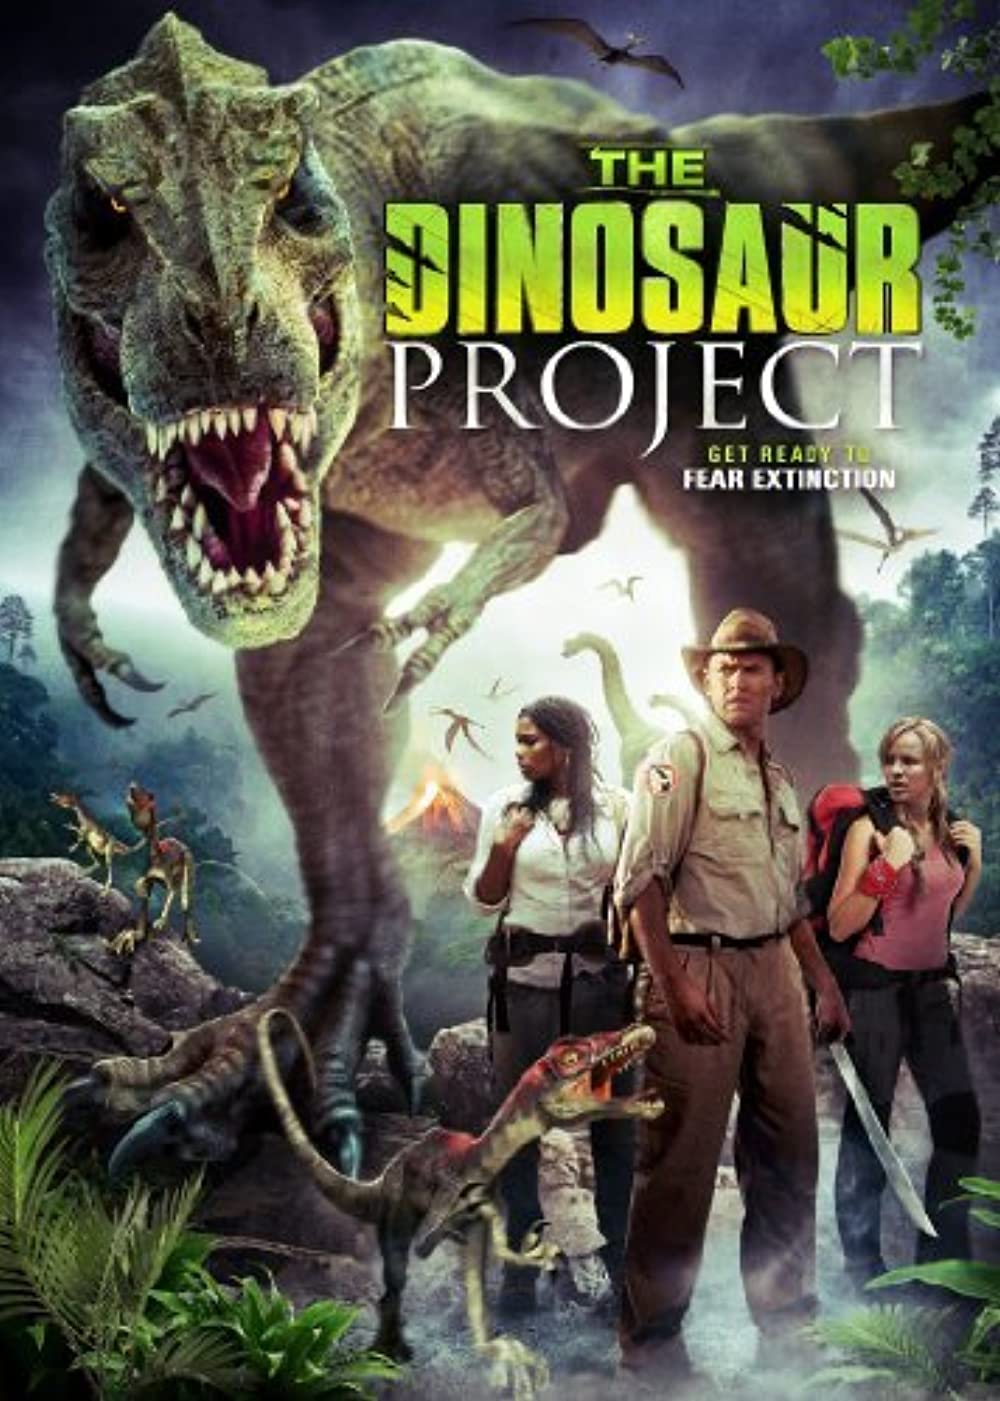 Poster film The Dinosaur Project.